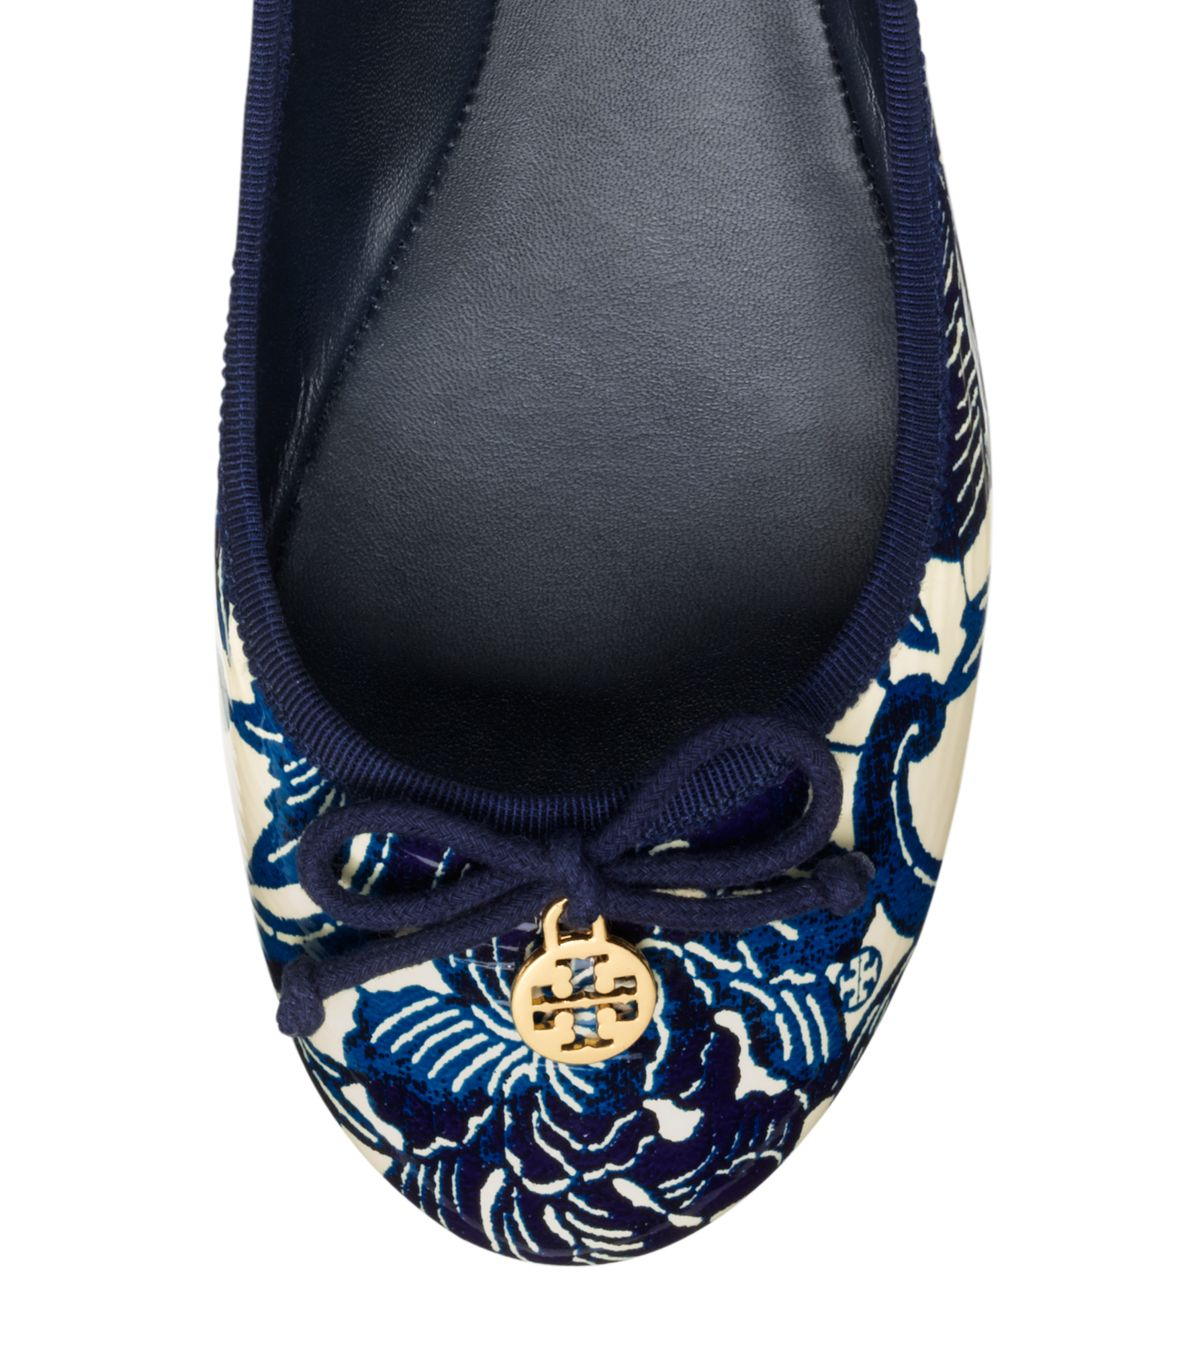 7bb32ce65d03 Lyst - Tory Burch Printed Patent Leather Chelsea Ballet Flat in Blue